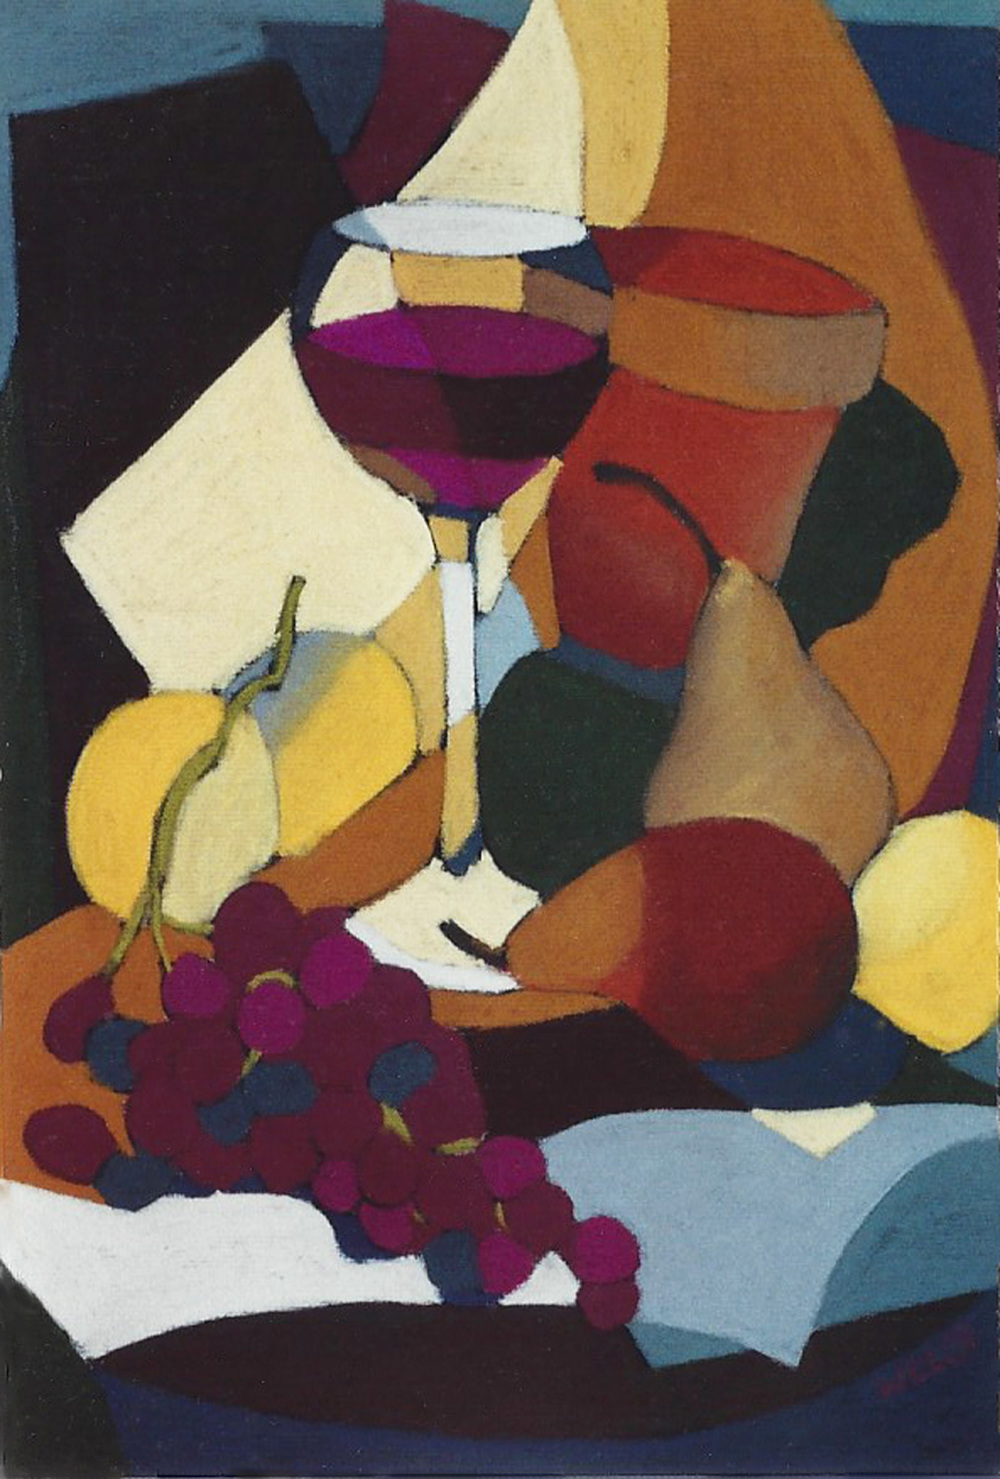 Wine Glass and Fruit